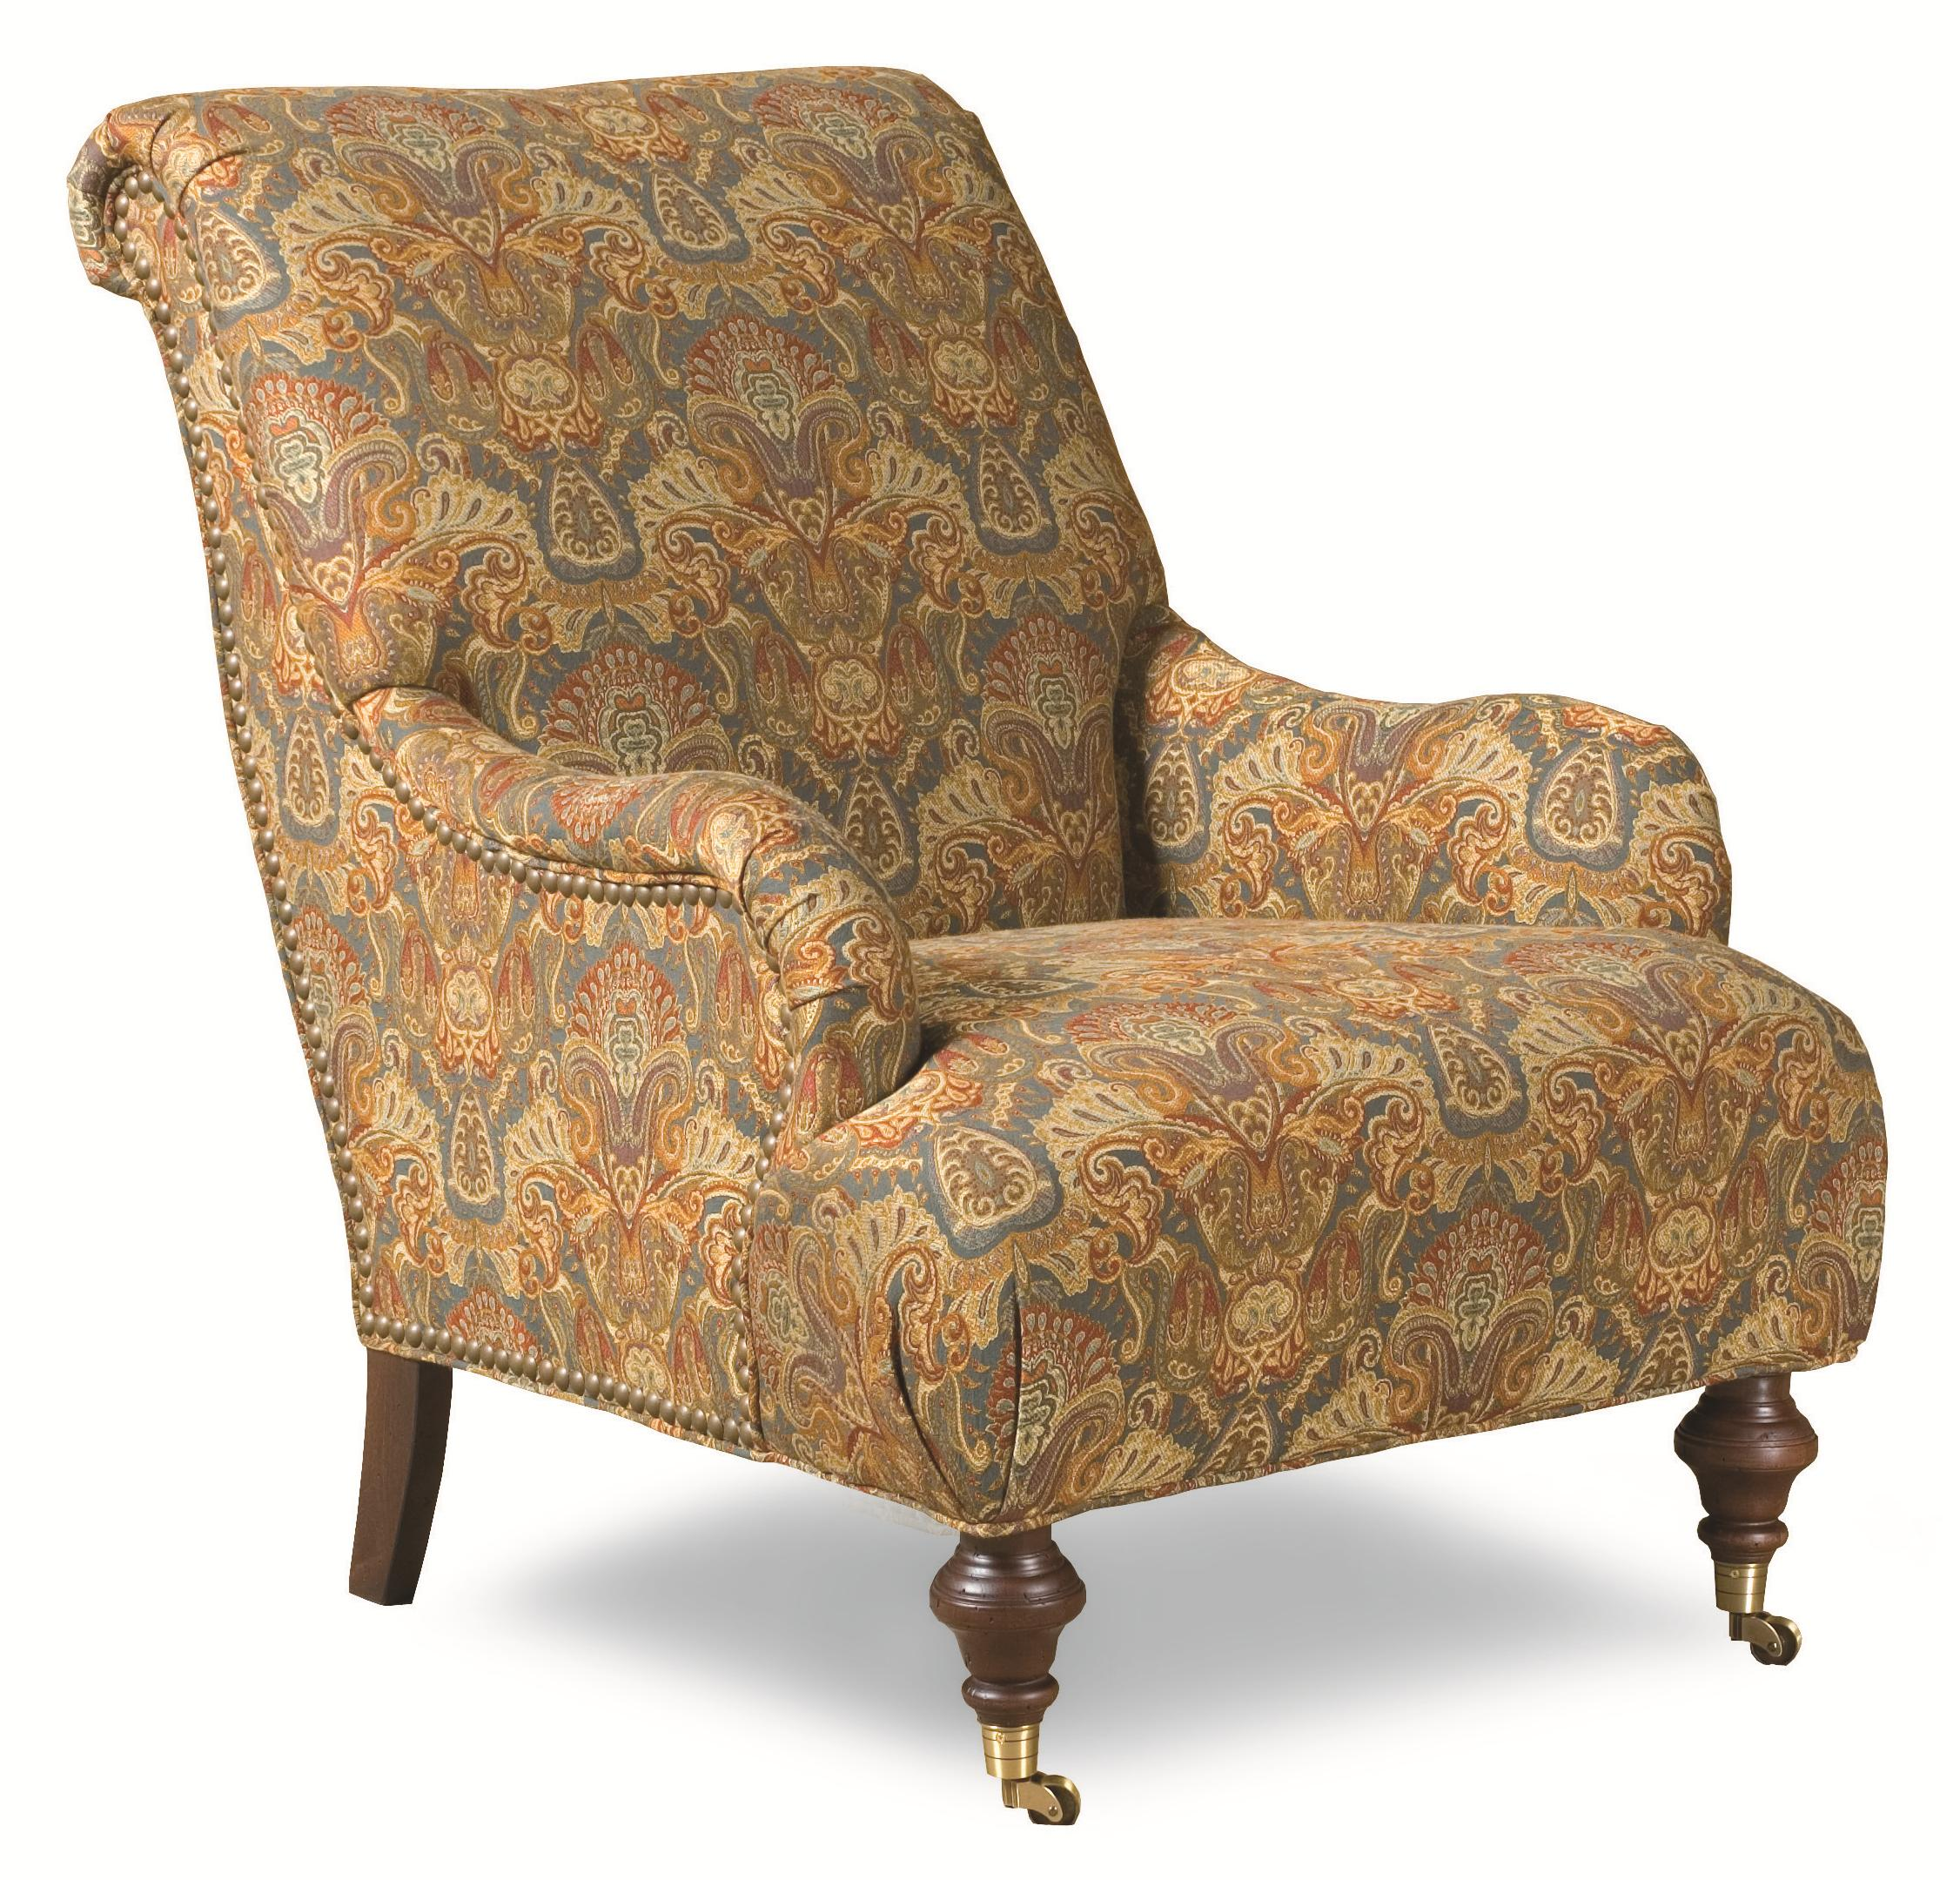 Huntington House 7372 Traditional Roll Back Chair With English Arms And  Casters   AHFA   Upholstered Chair Dealer Locator